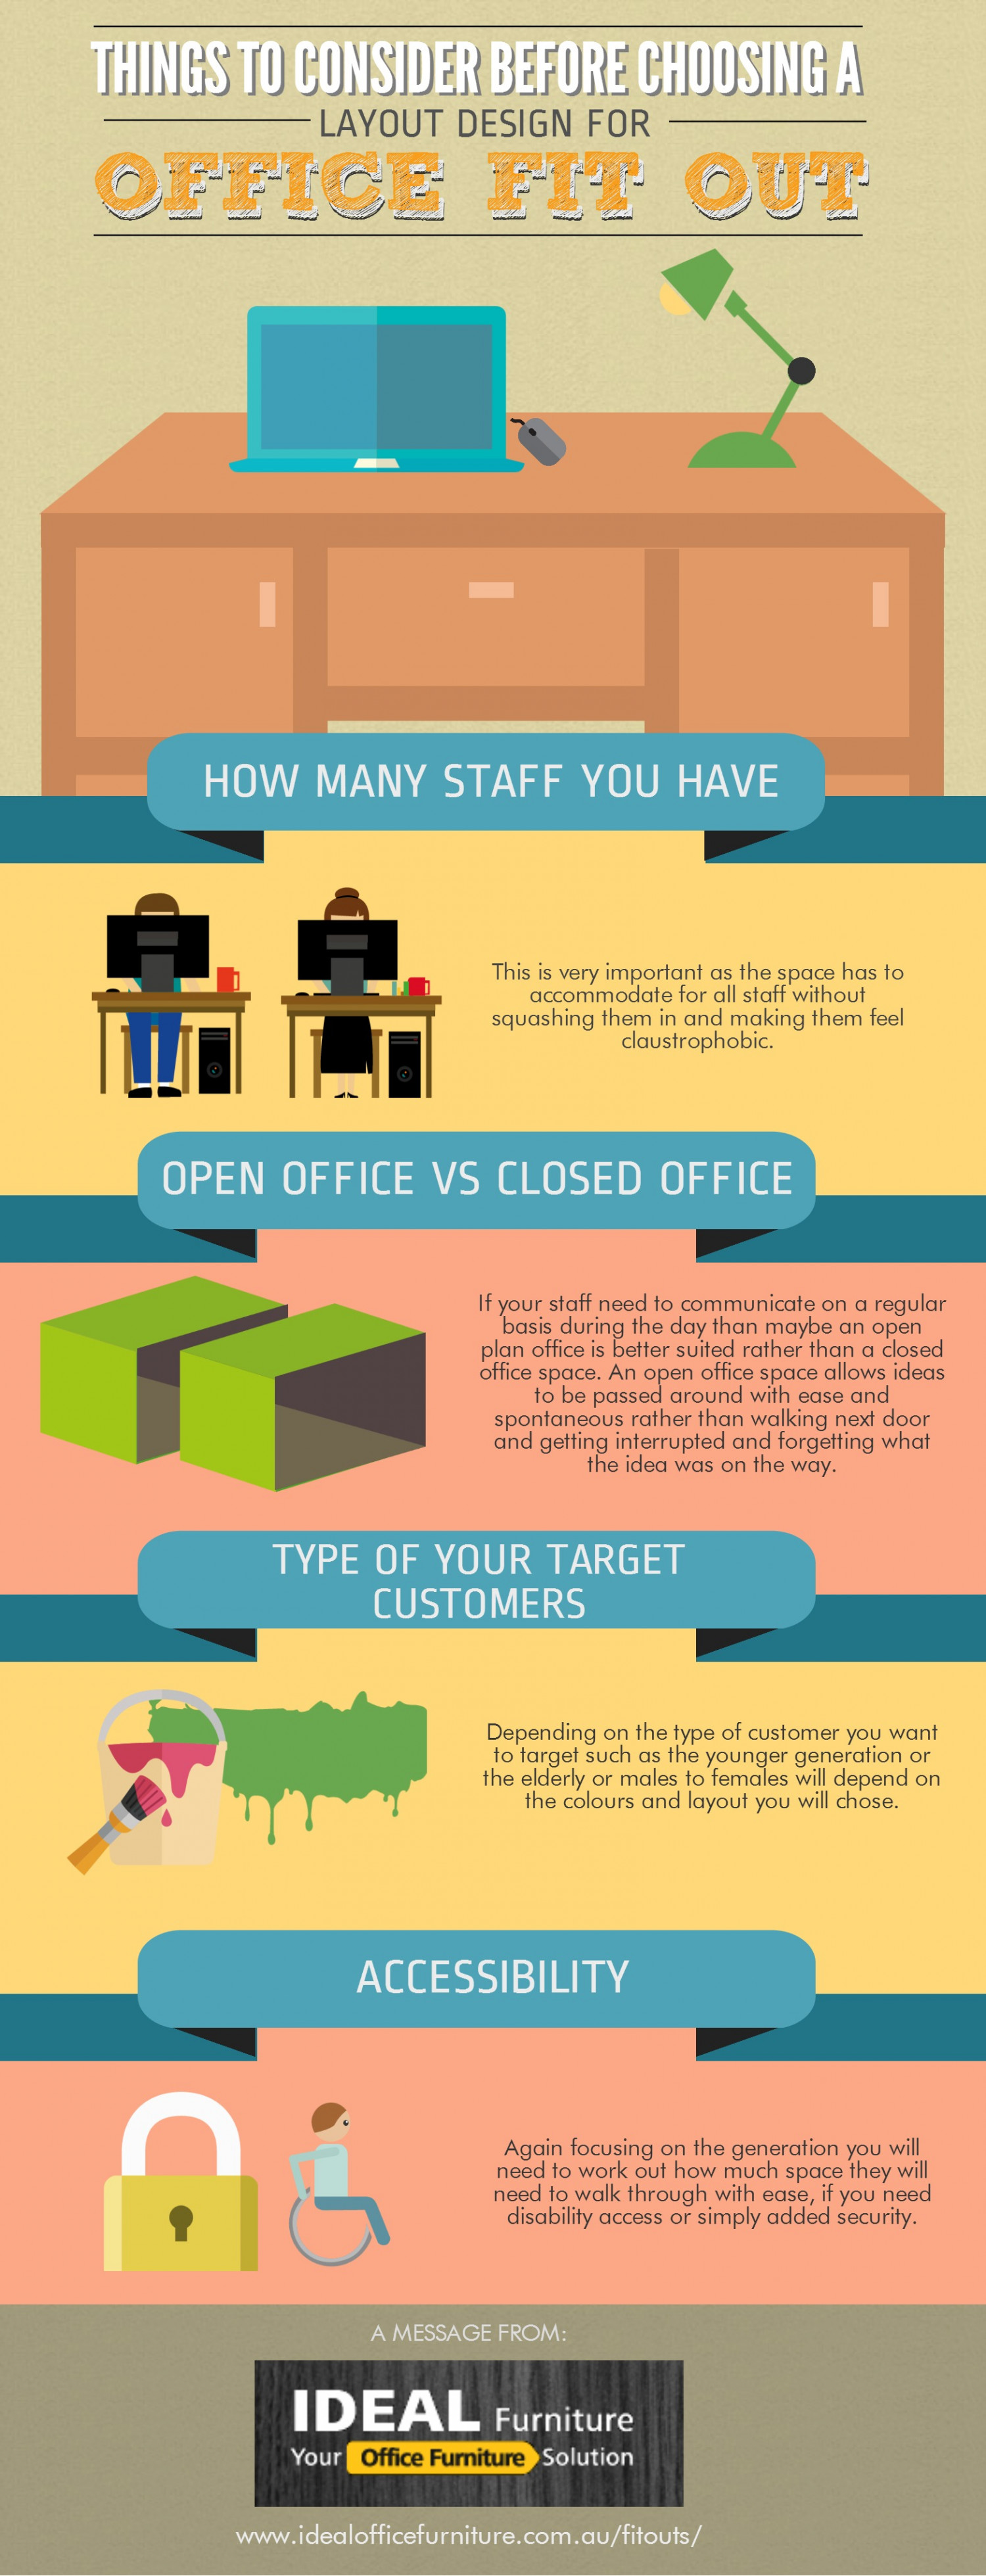 Things To Consider Before Choosing A Layout Design For Office Fit Out Infographic